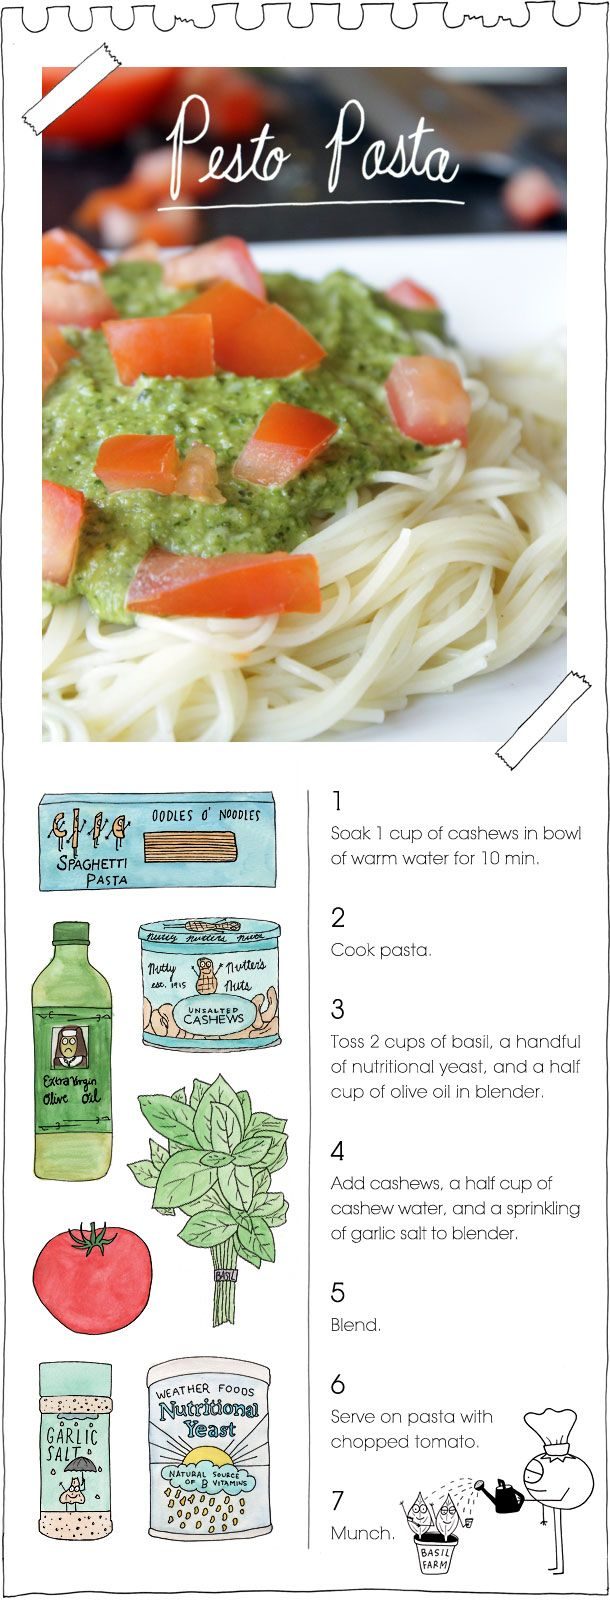 Quick and easy pesto pasta? Um...YES! This recipe from @The Vegan Stoner breaks it down for you step-by-step. All their recipes are made without extensive ingredient lists. Enjoy!